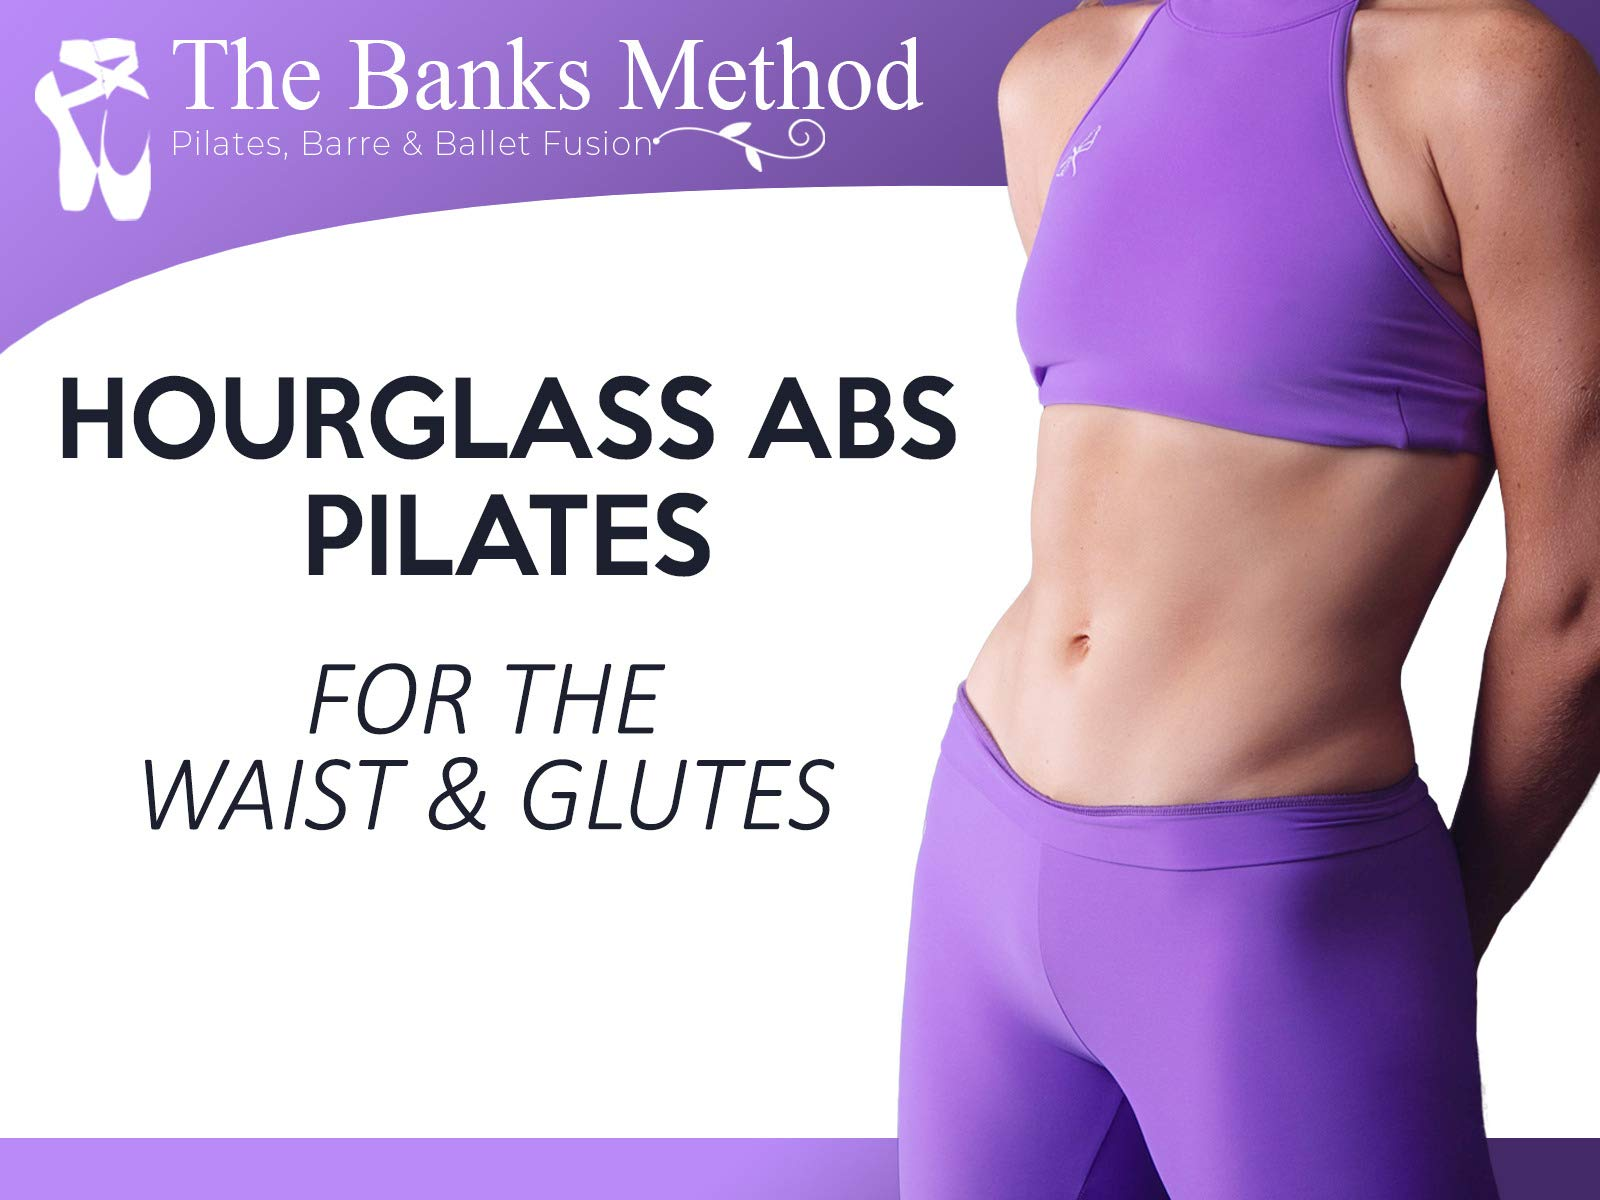 Hourglass Abs Pilates for the Waist and Glutes | The Banks Method on Amazon Prime Video UK